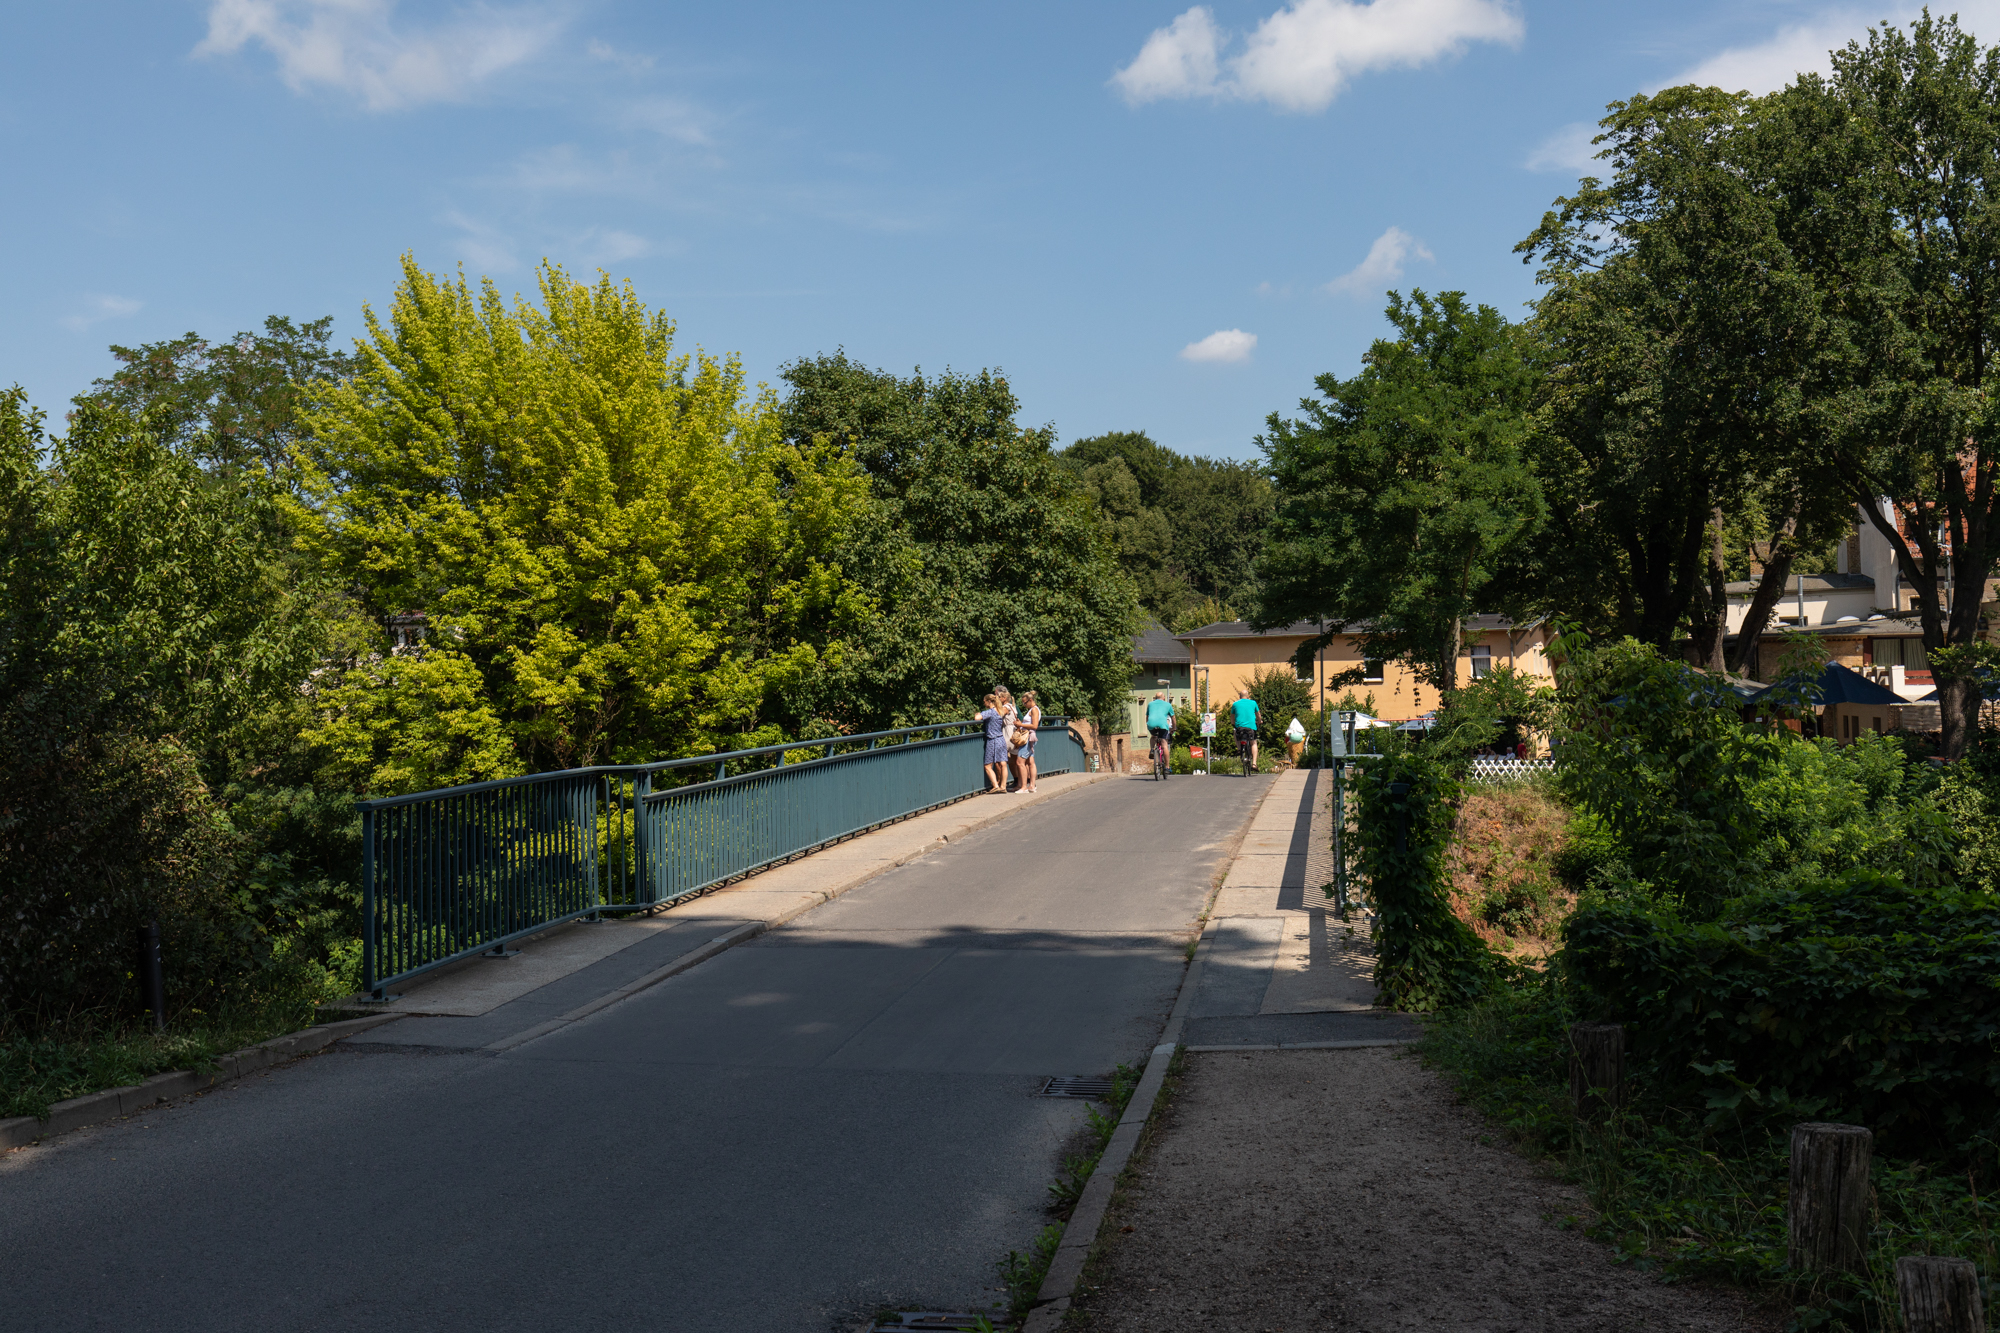 Bridge between Park Babelsberg and Klein Glienicke - a former East German enclave separated from West Berlin by the Berlin Wall and only accessible with special permission